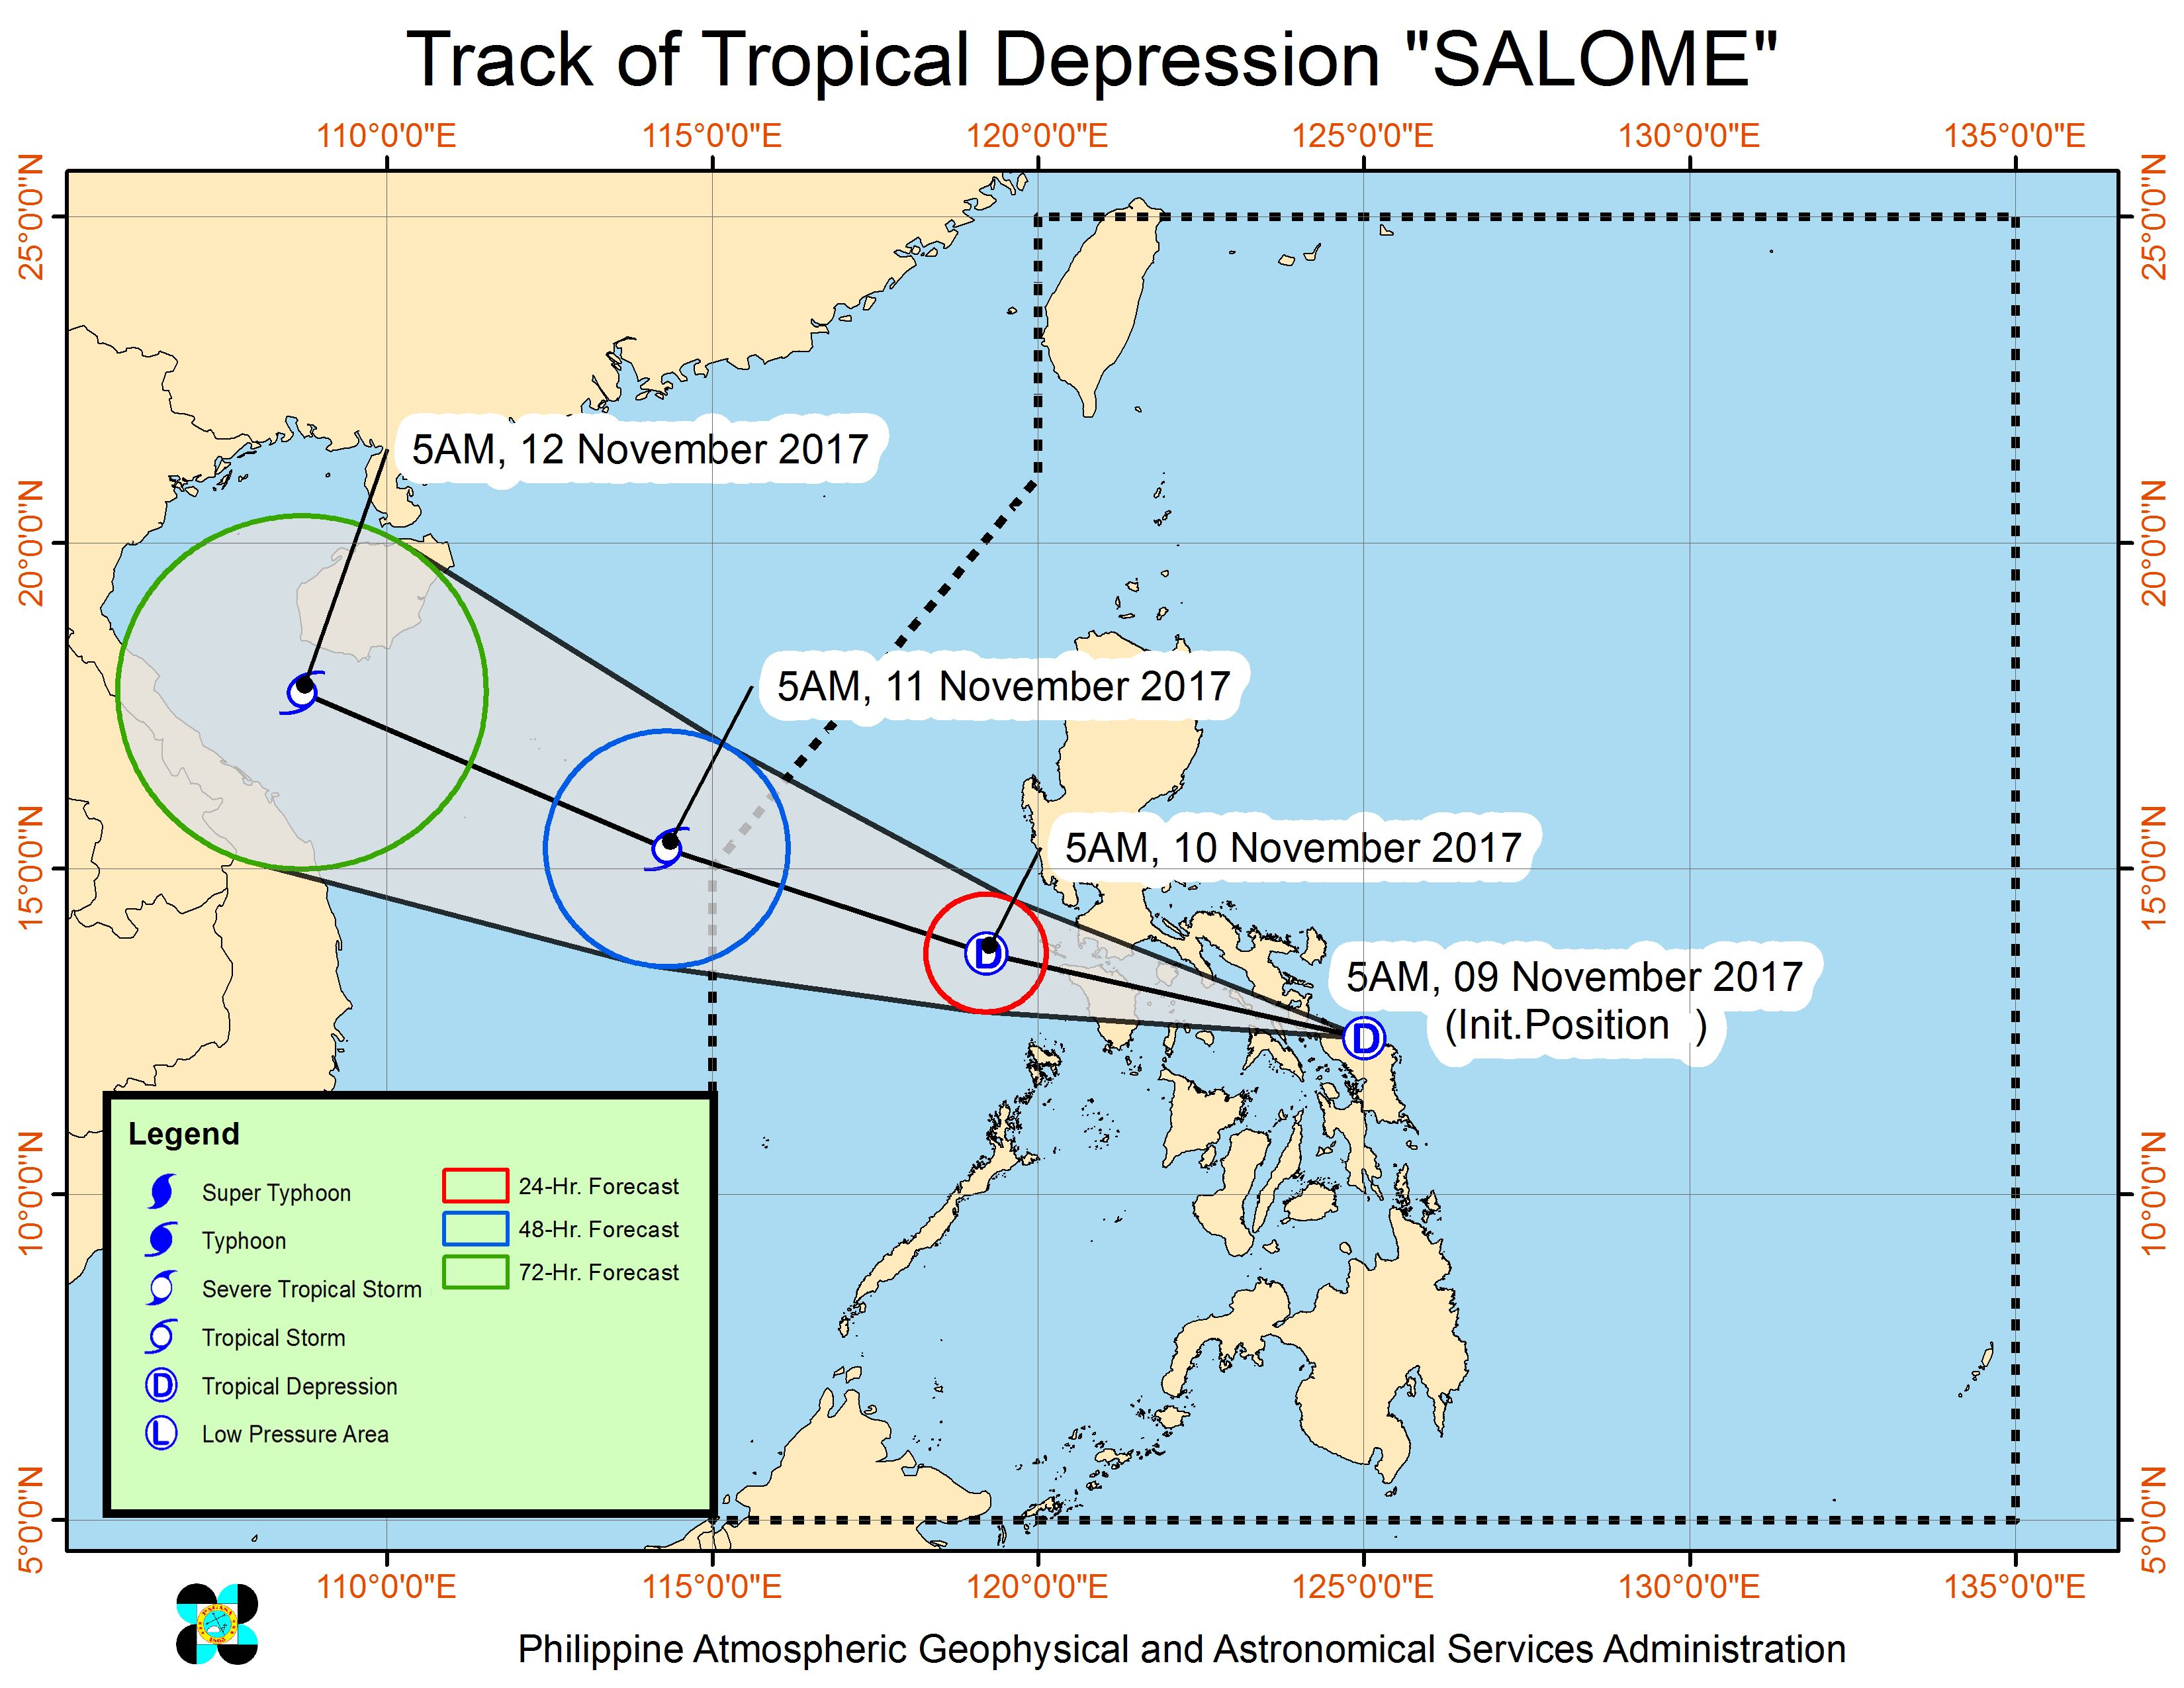 Forecast track of Tropical Depression Salome as of November 9, 9 am. Image courtesy of PAGASA